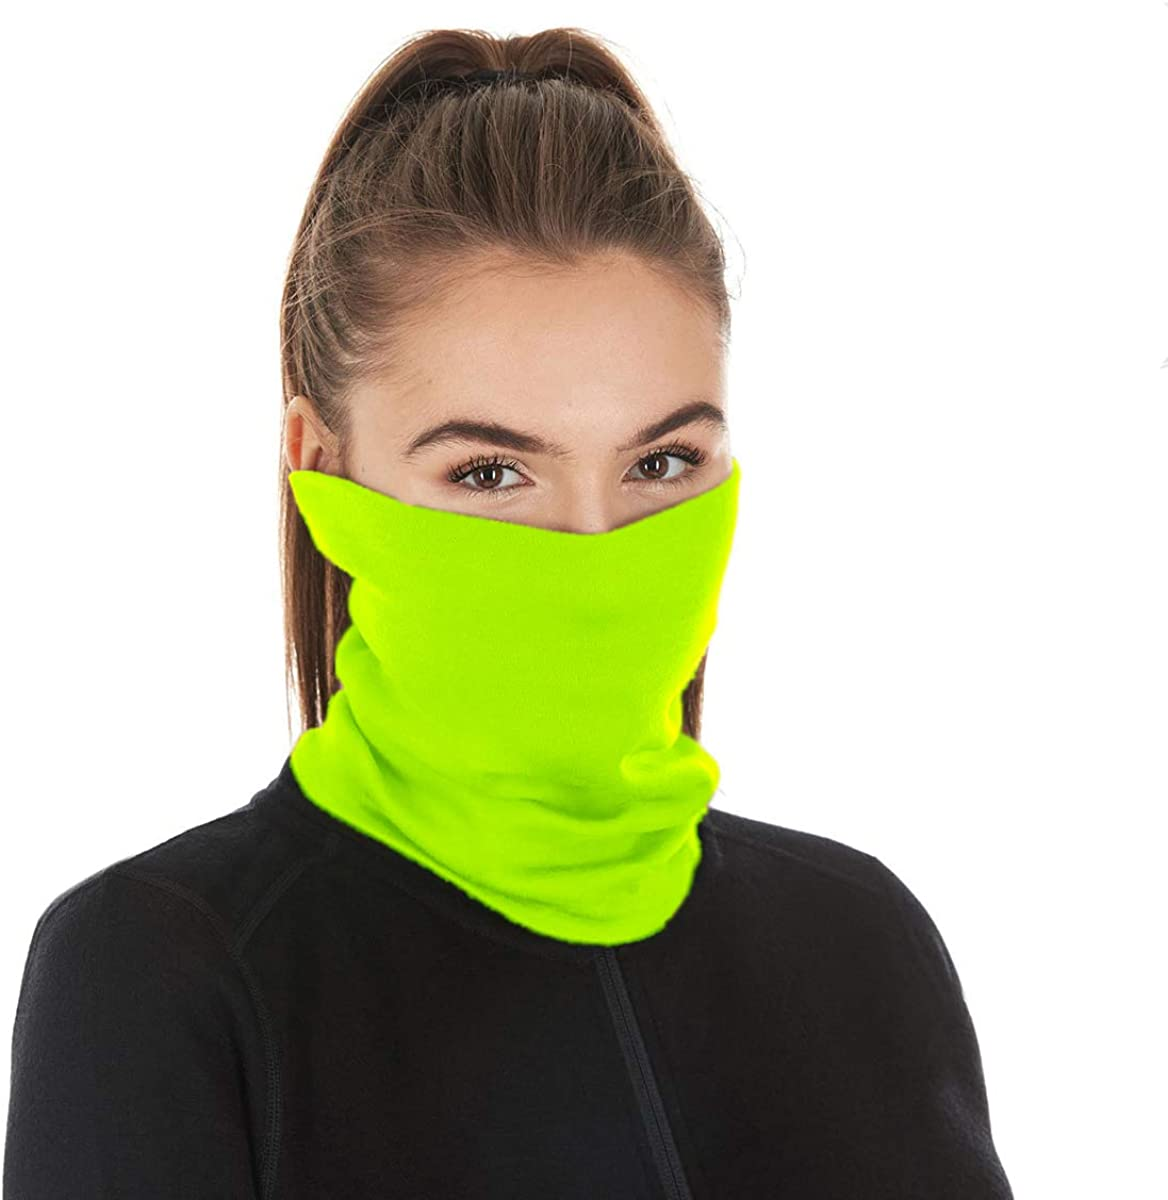 Scarf Bandanas Neck Gaiter with Safety Carbon Filters,Multi-purpose Neck Warmers For Men women Sports//Outdoors 17pcs